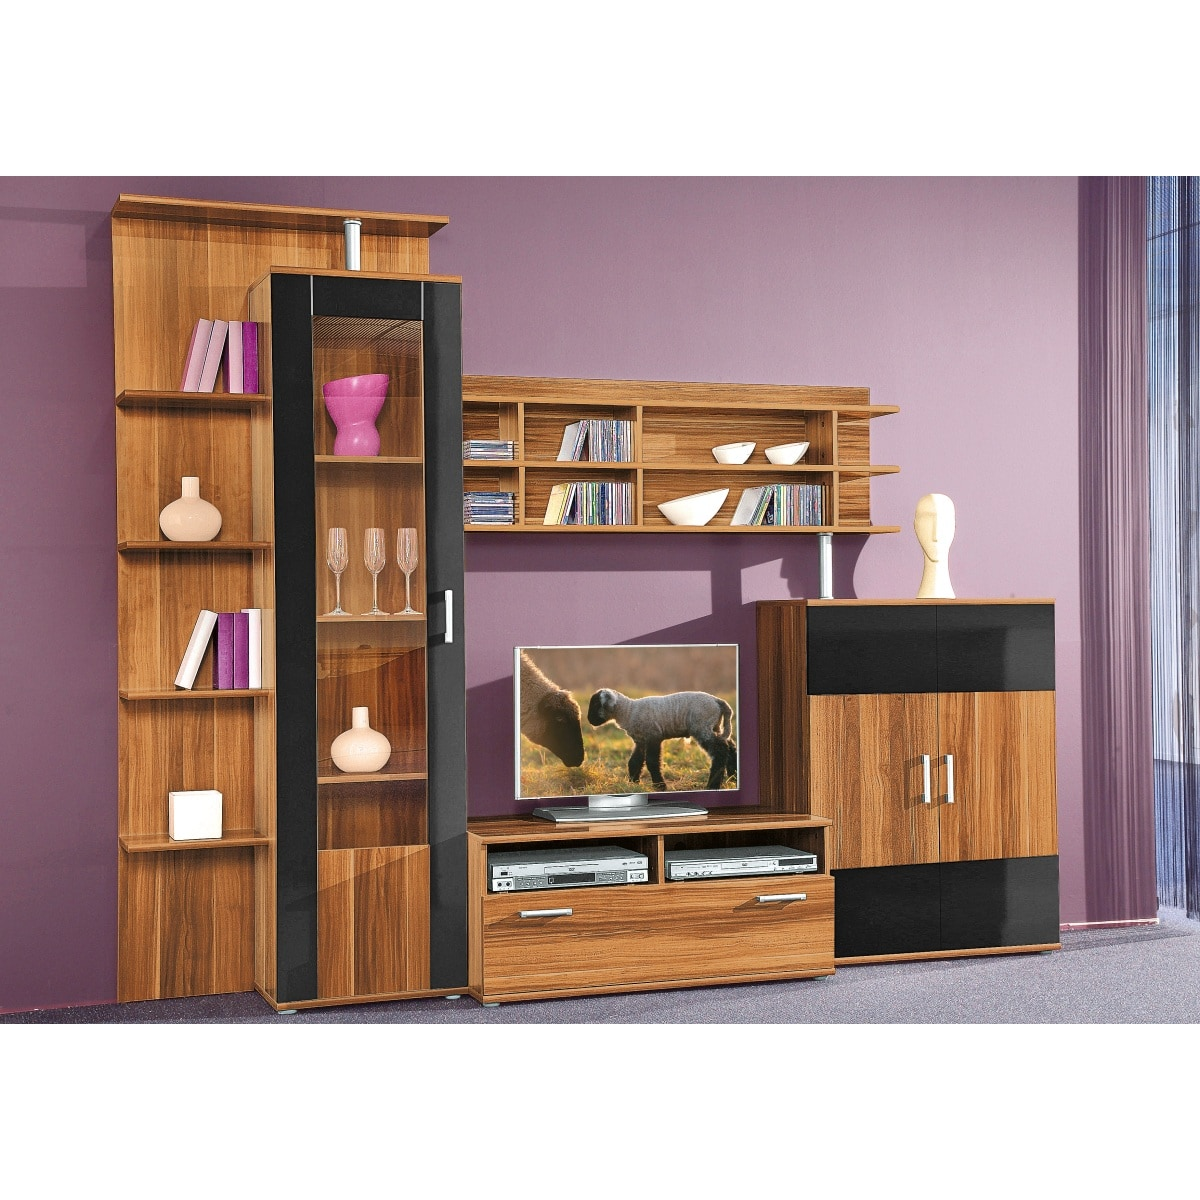 wohnwand nussbaum schwarz ca 275 x 210 x 50 cm wohnw nde wohnen m bel boss. Black Bedroom Furniture Sets. Home Design Ideas